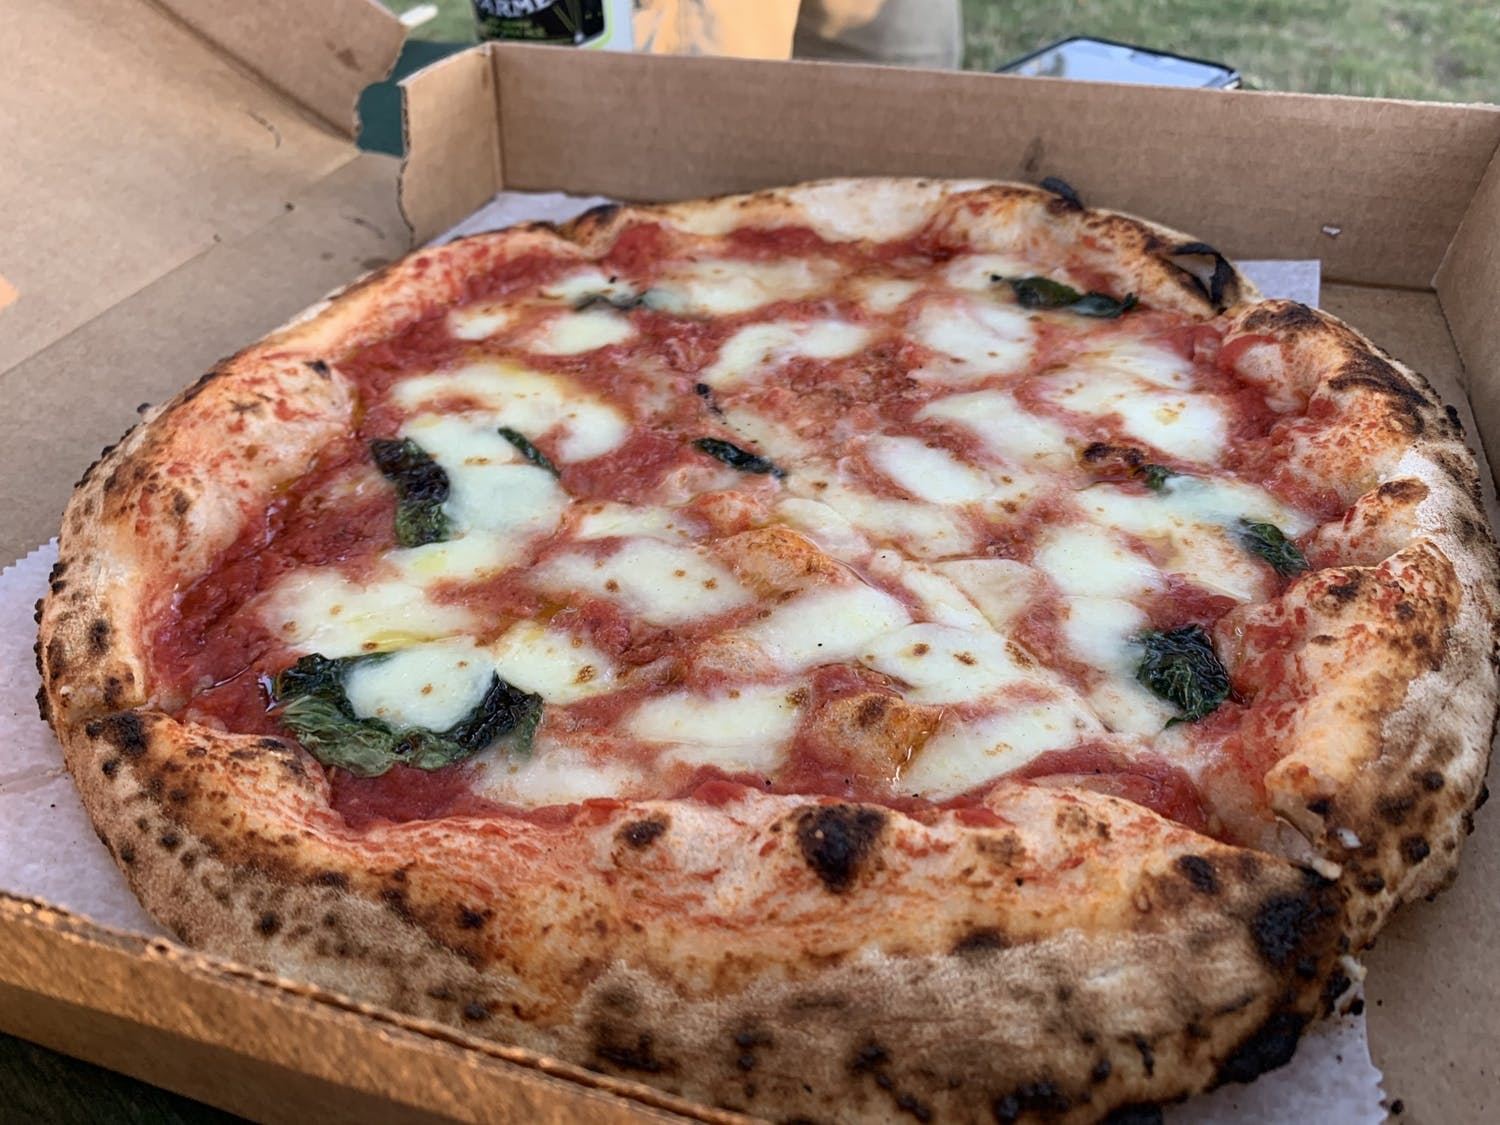 Puffy and fresh, this Margherita pizza is hard to put down.